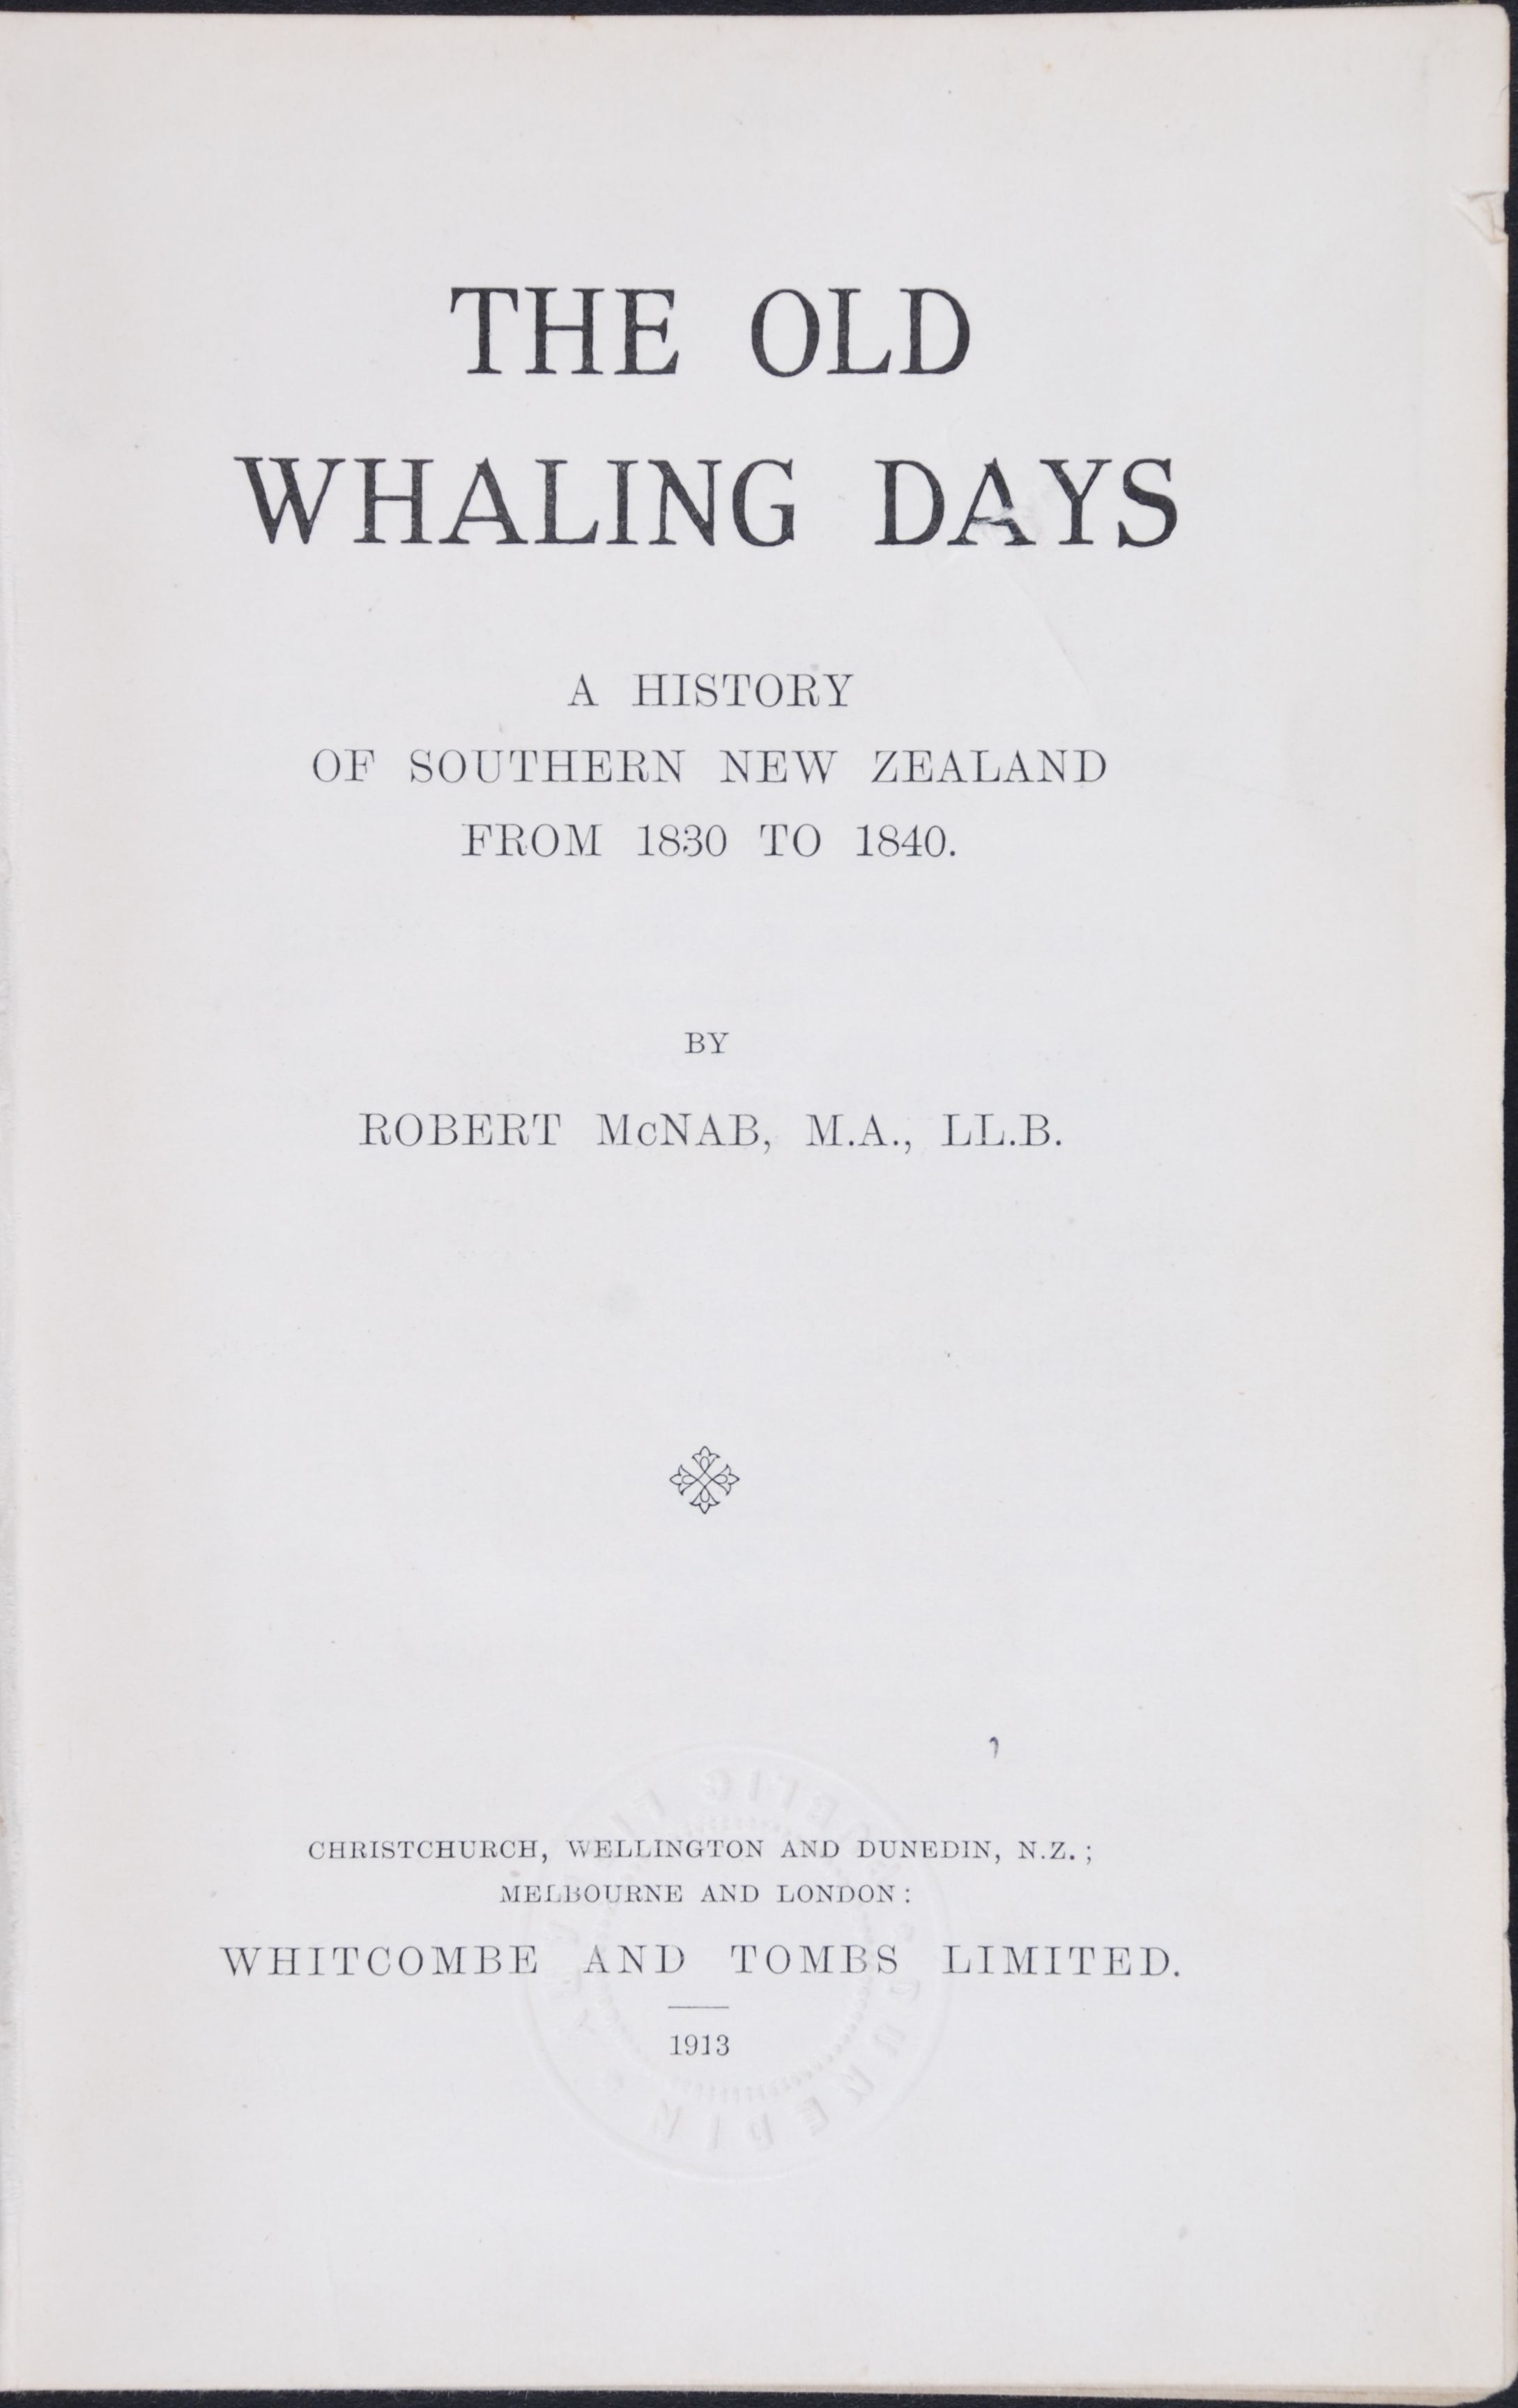 Robert McNab. The Old Whaling Days: a history of Southern New Zealand from 1830 to 1840.  Christchurch: Whitcombe and Tombs Limited, 1913.